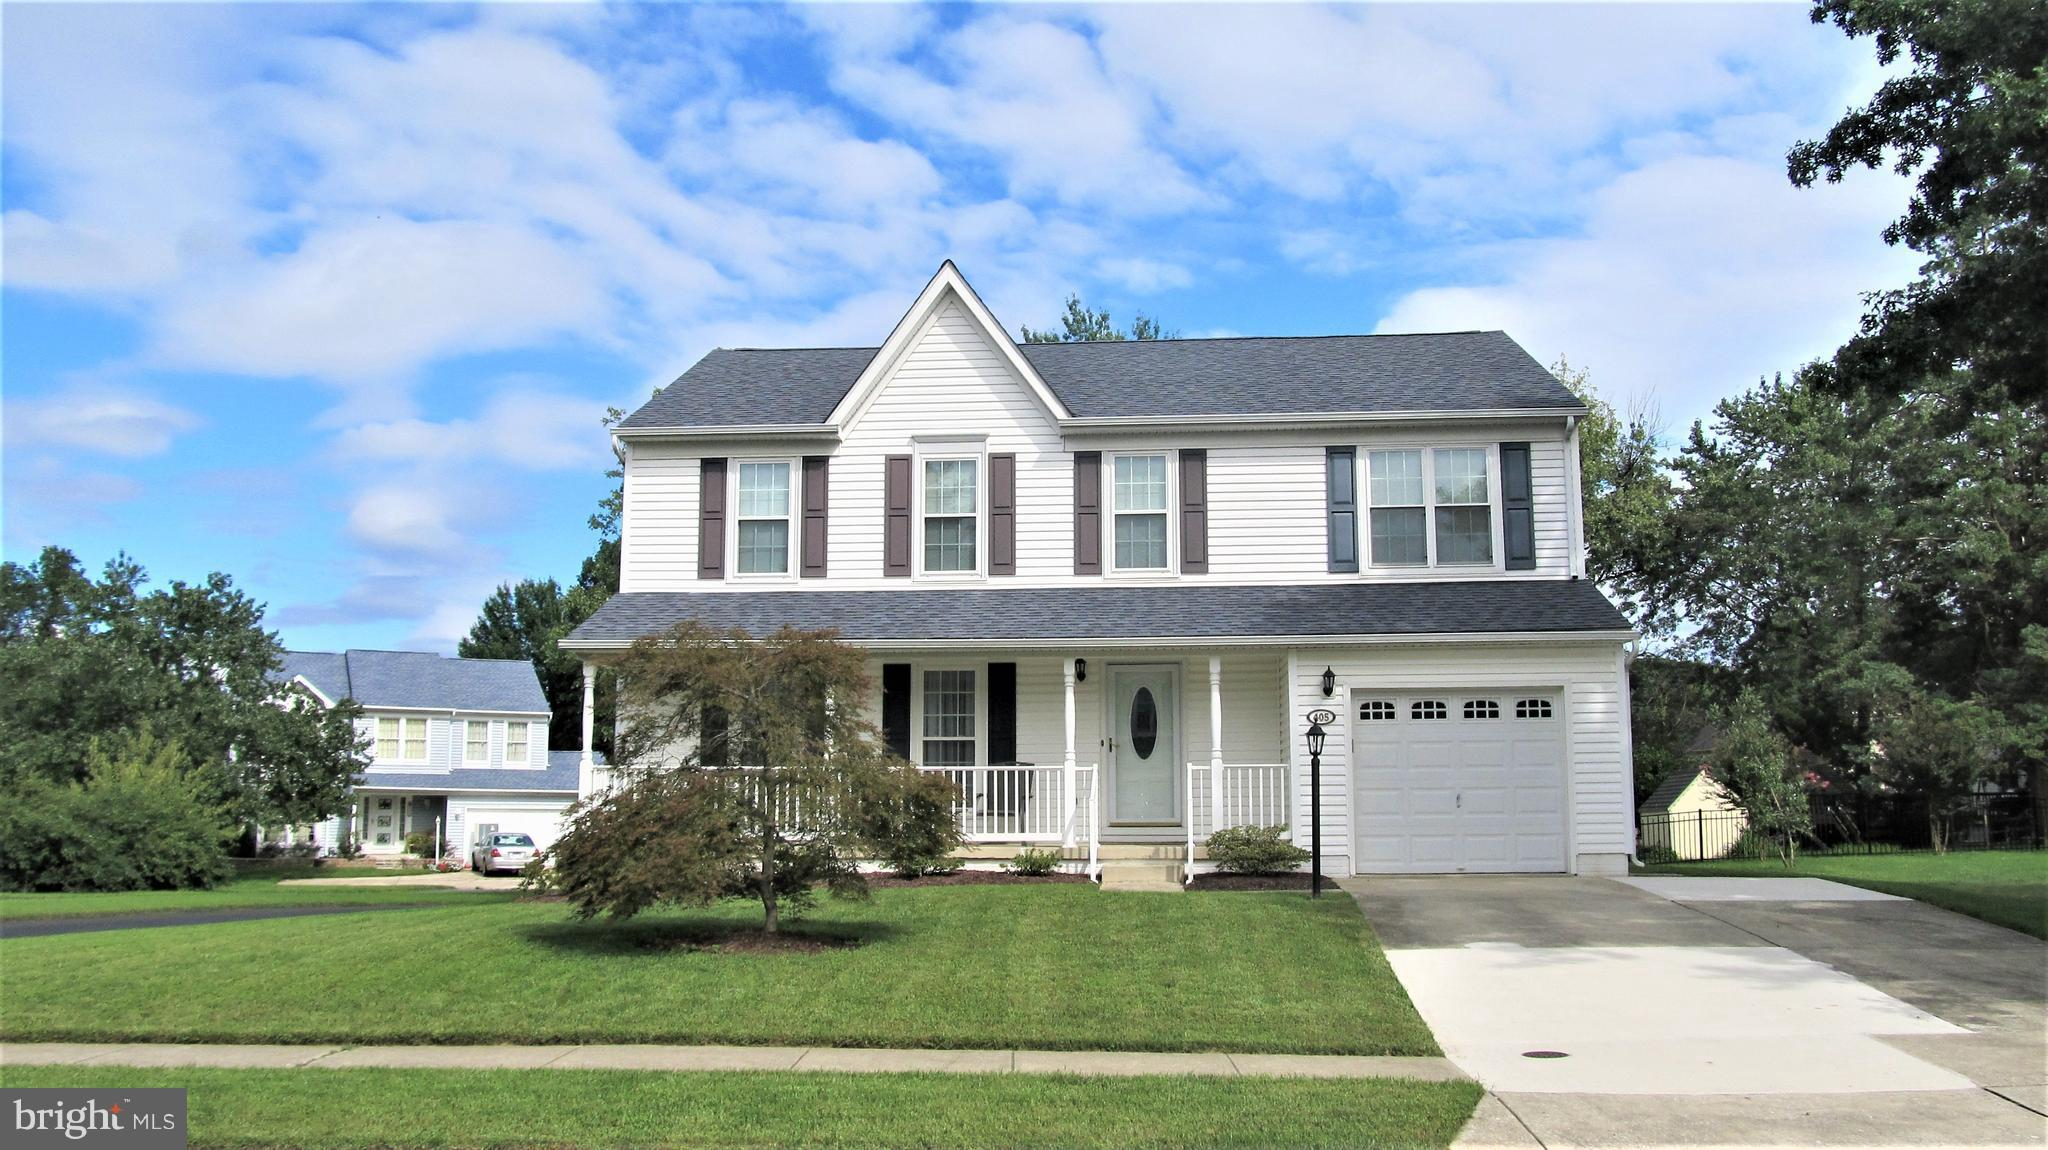 405 JEROME AVENUE, LINTHICUM, MD 21090